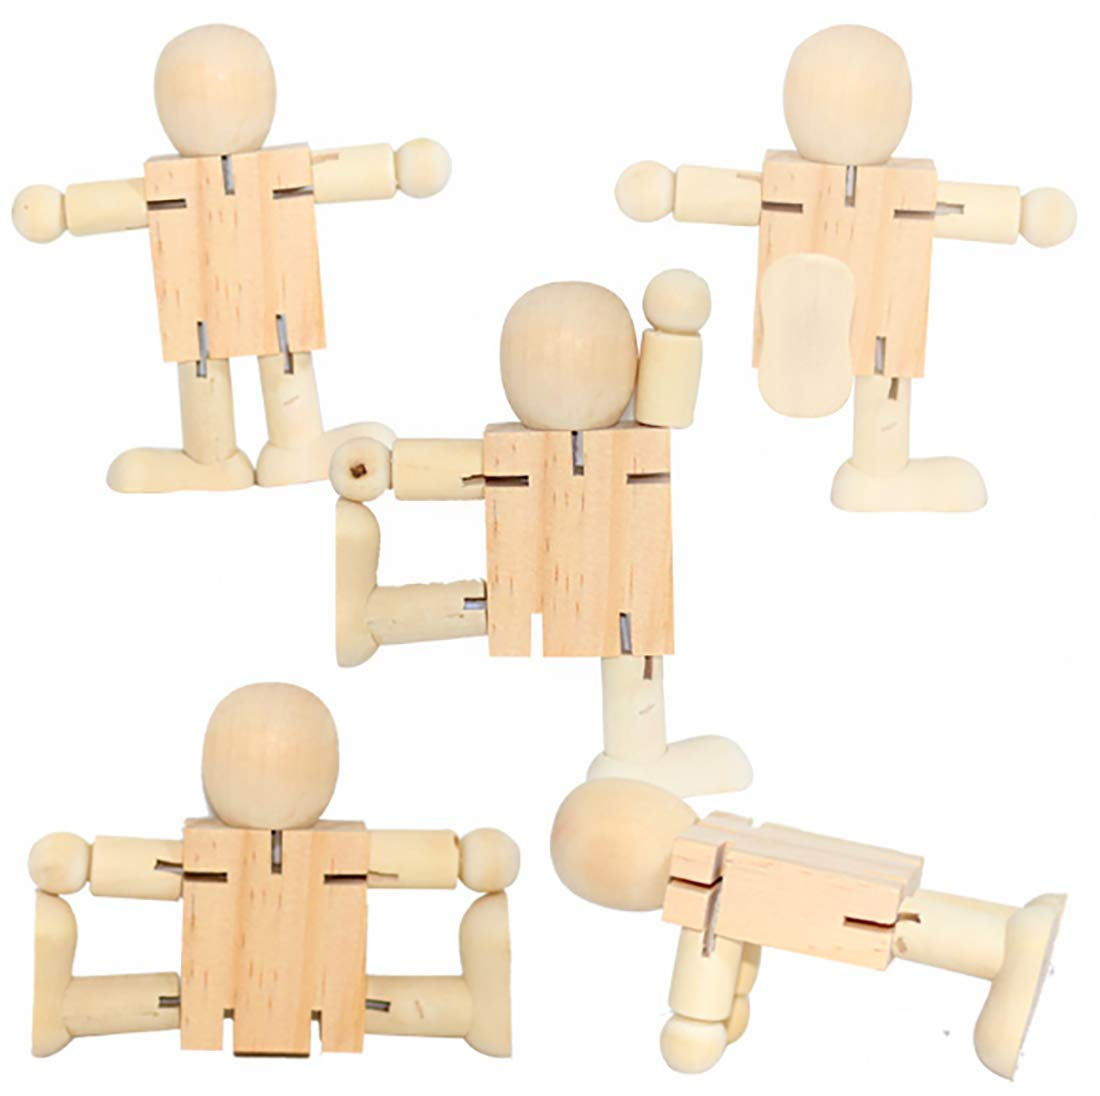 5PCS Robot Wooden Scrapbooking Crafts Handmade Blank Wood DIY Arts Crafts Supplies Kids Baby Toys Christmas Home Decorations